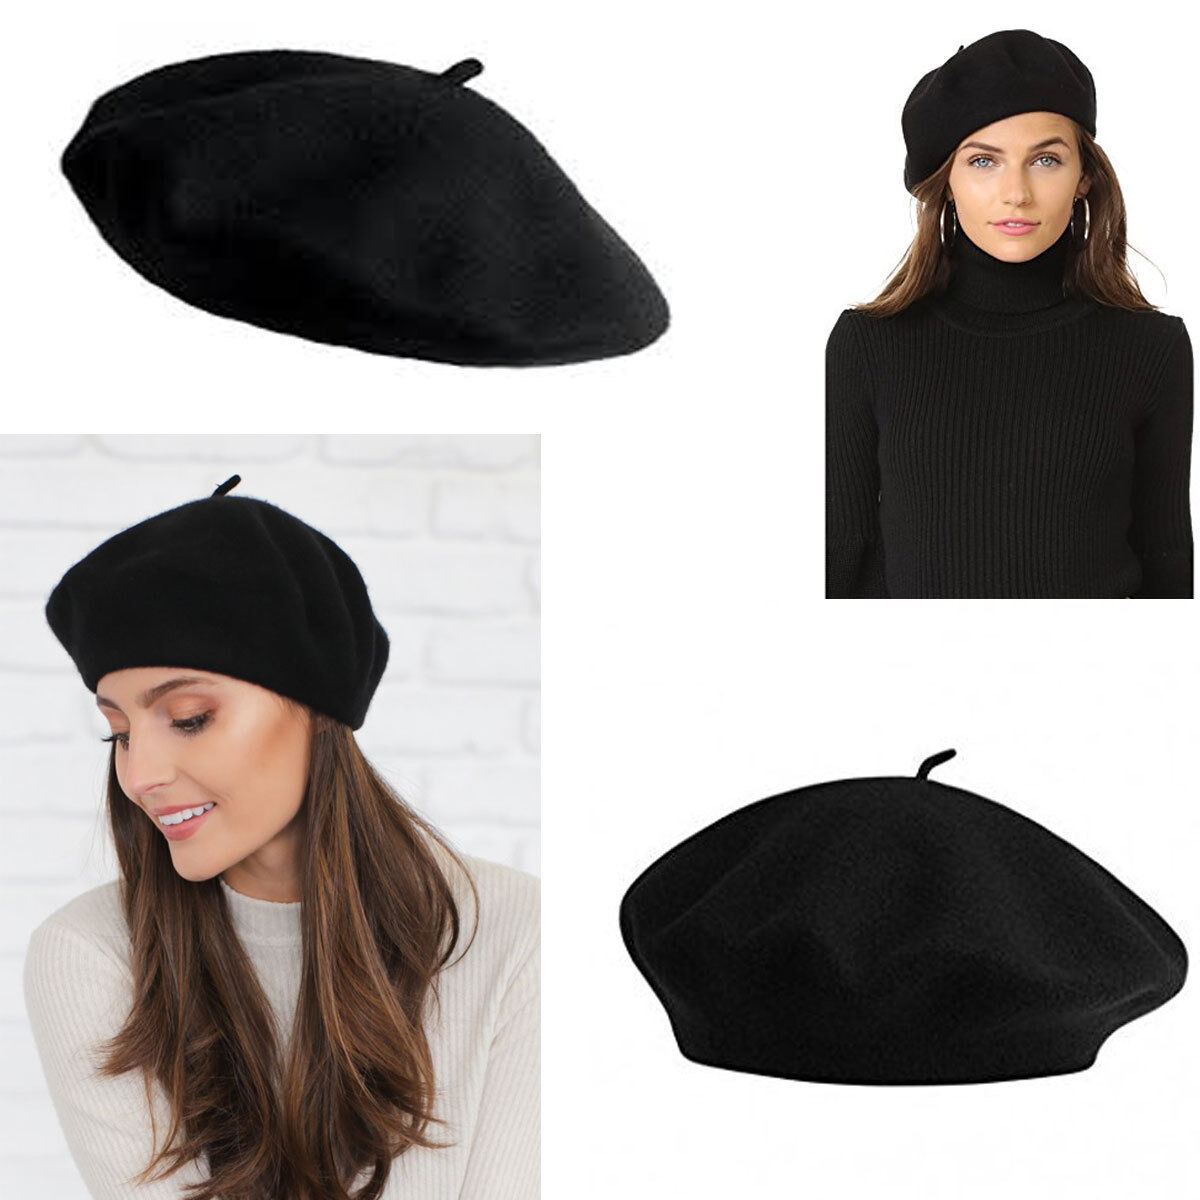 Details about 1pc Women 100% Warm Wool Winter Girl Beret French Artist  Beanie Hat Ski Cap    8654e646d99